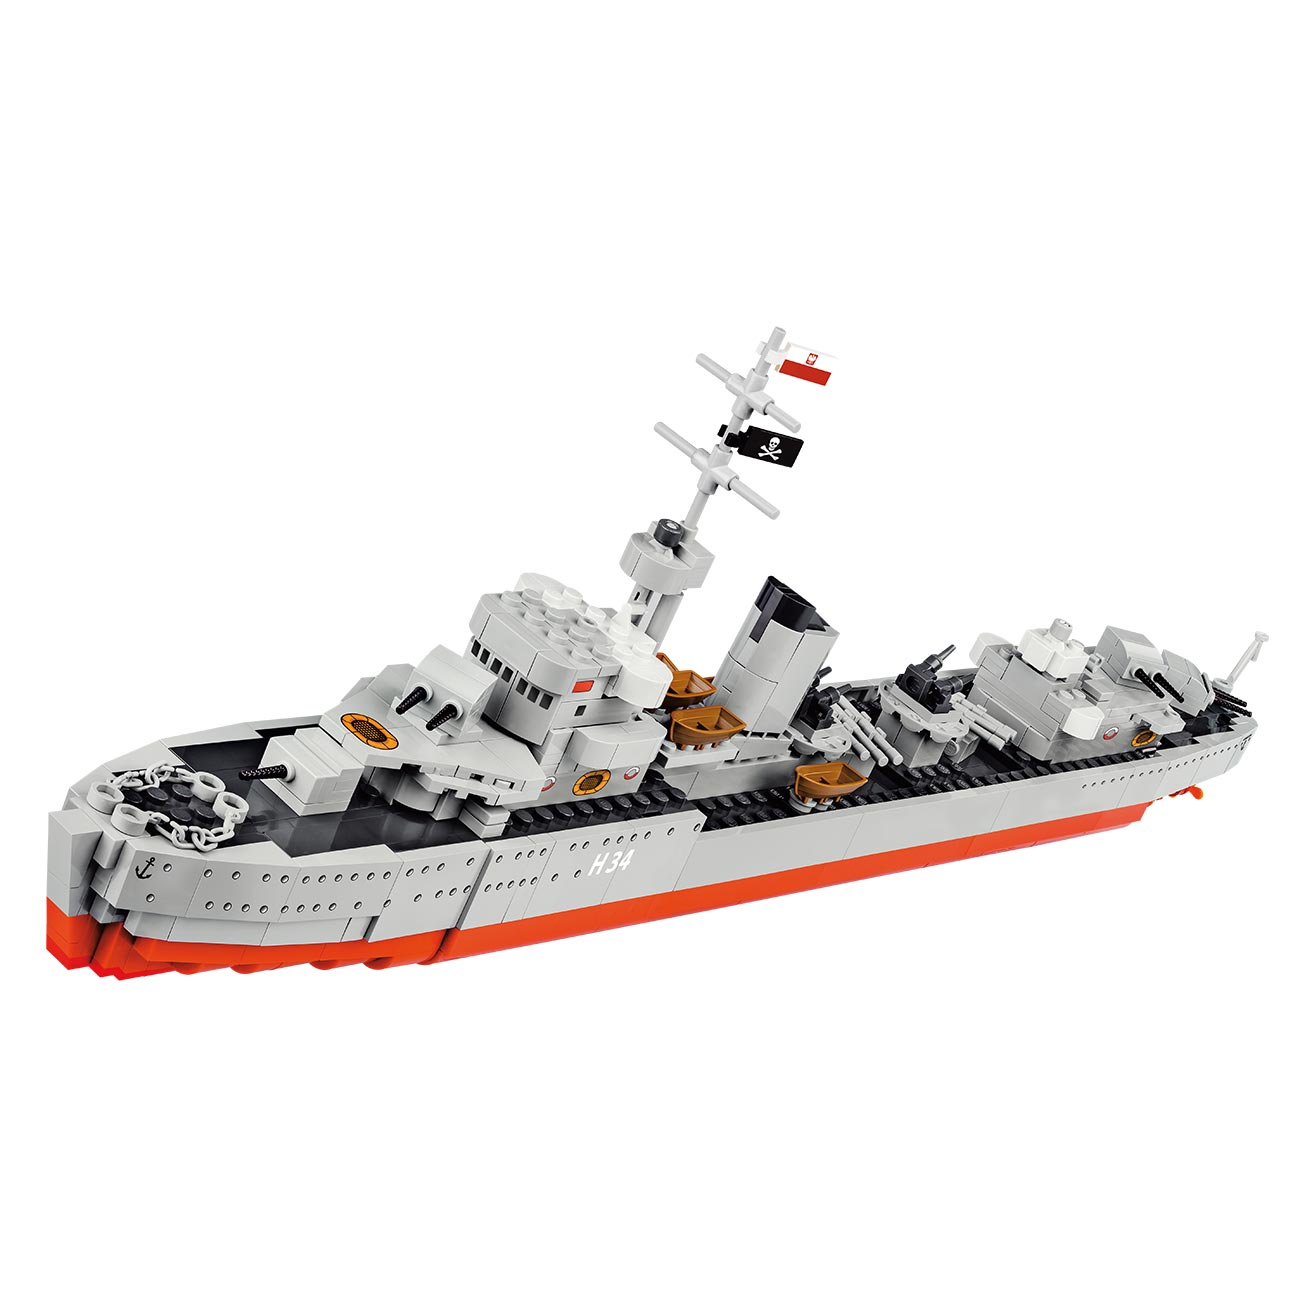 Cobi World of Warships Small Army Bausatz Schiff Orp Blyskawica 680 Teile 3080 0